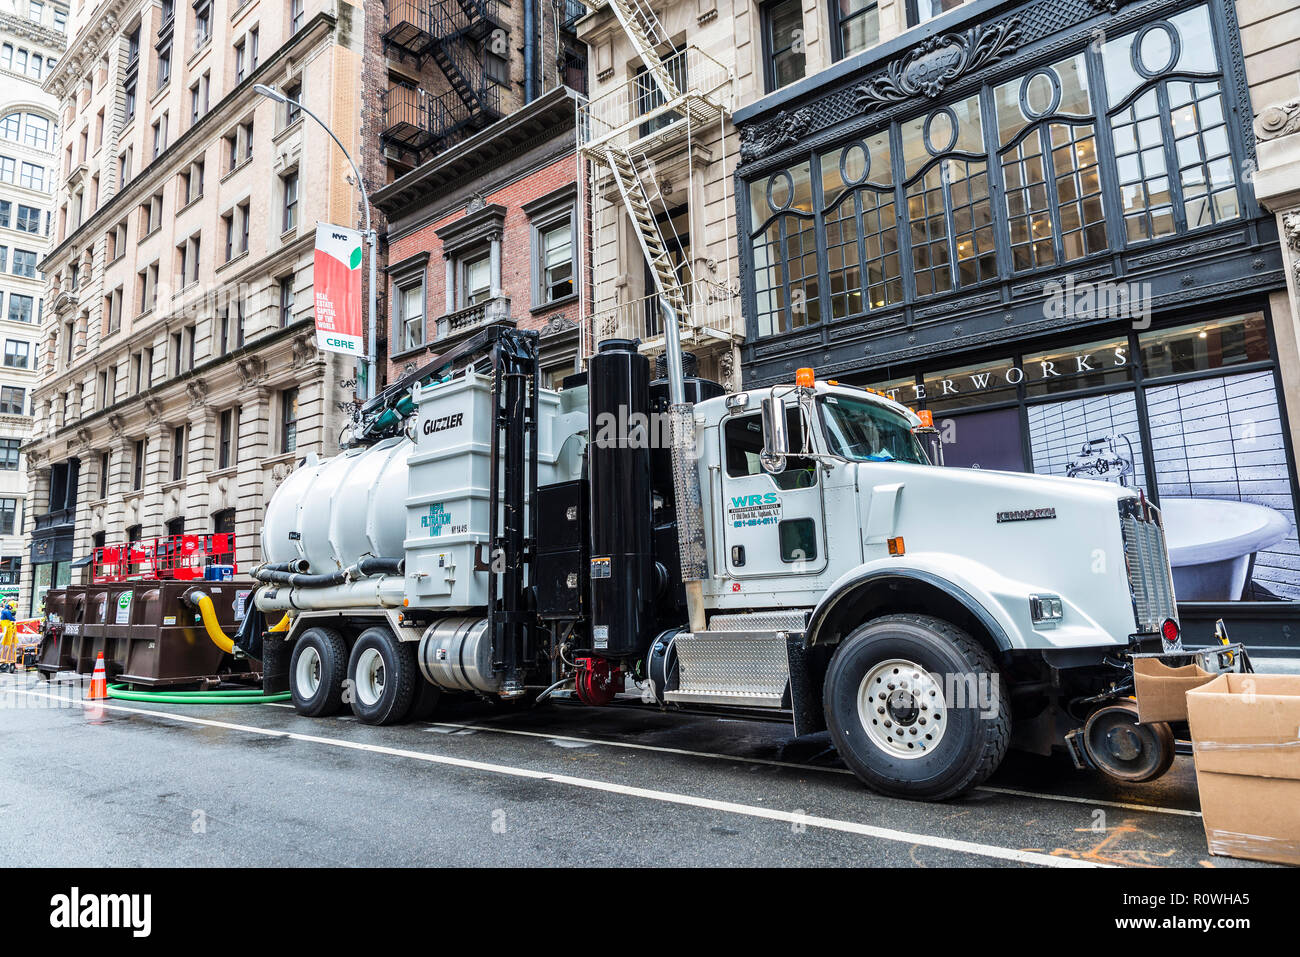 New York Industrial Works Fifth Wheel Truck Stock Photos And Fifth Wheel Truck Stock